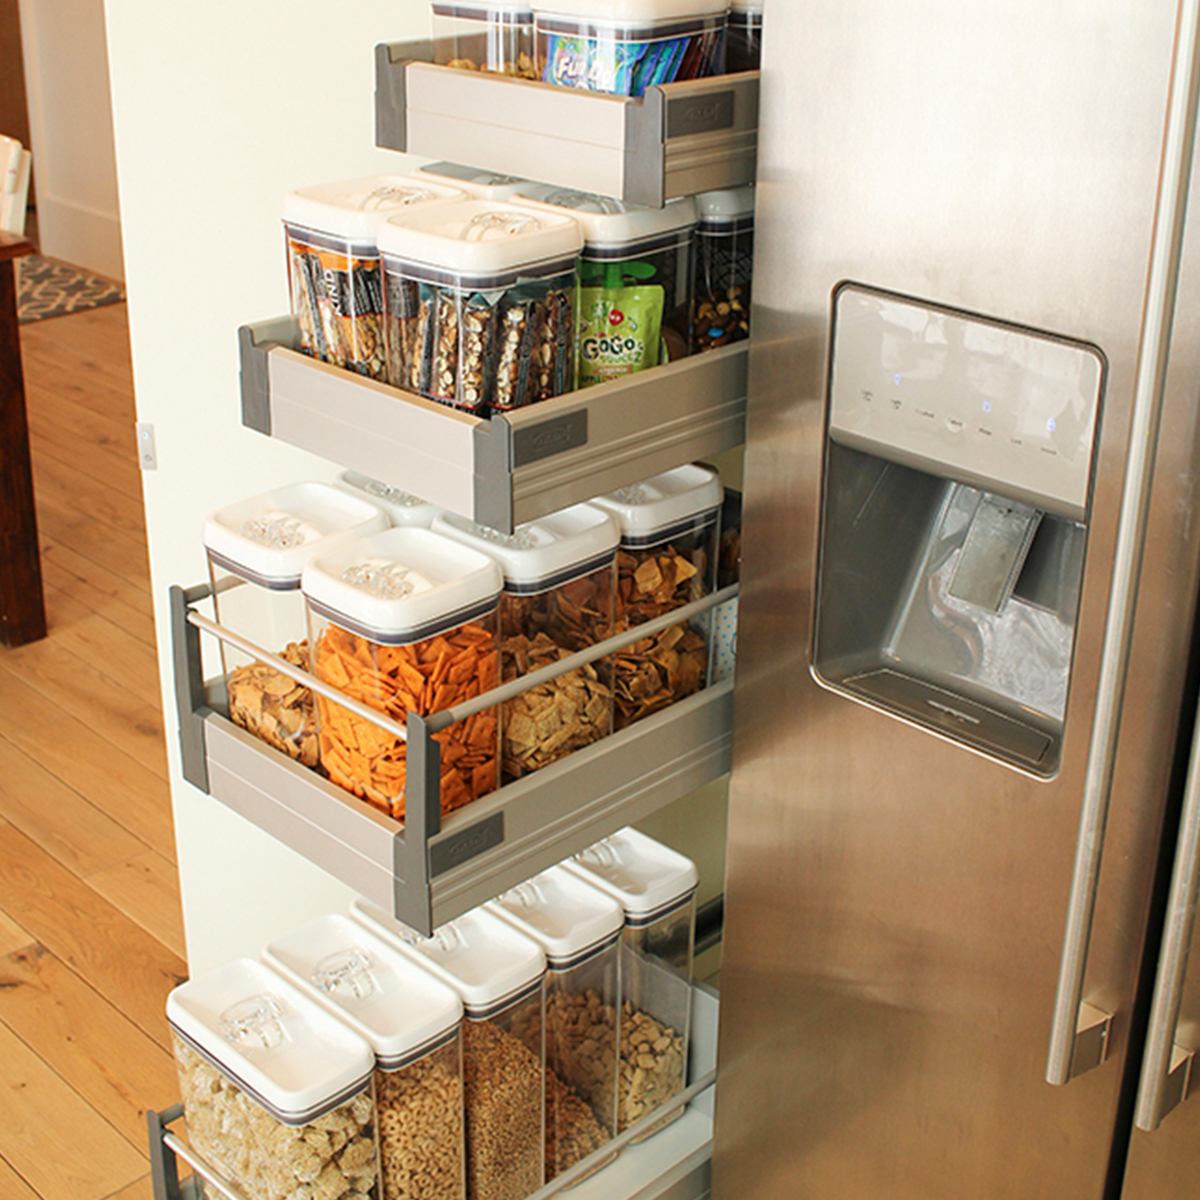 Flip-Tite containers help eliminate messy piles and keep food fresh. photo